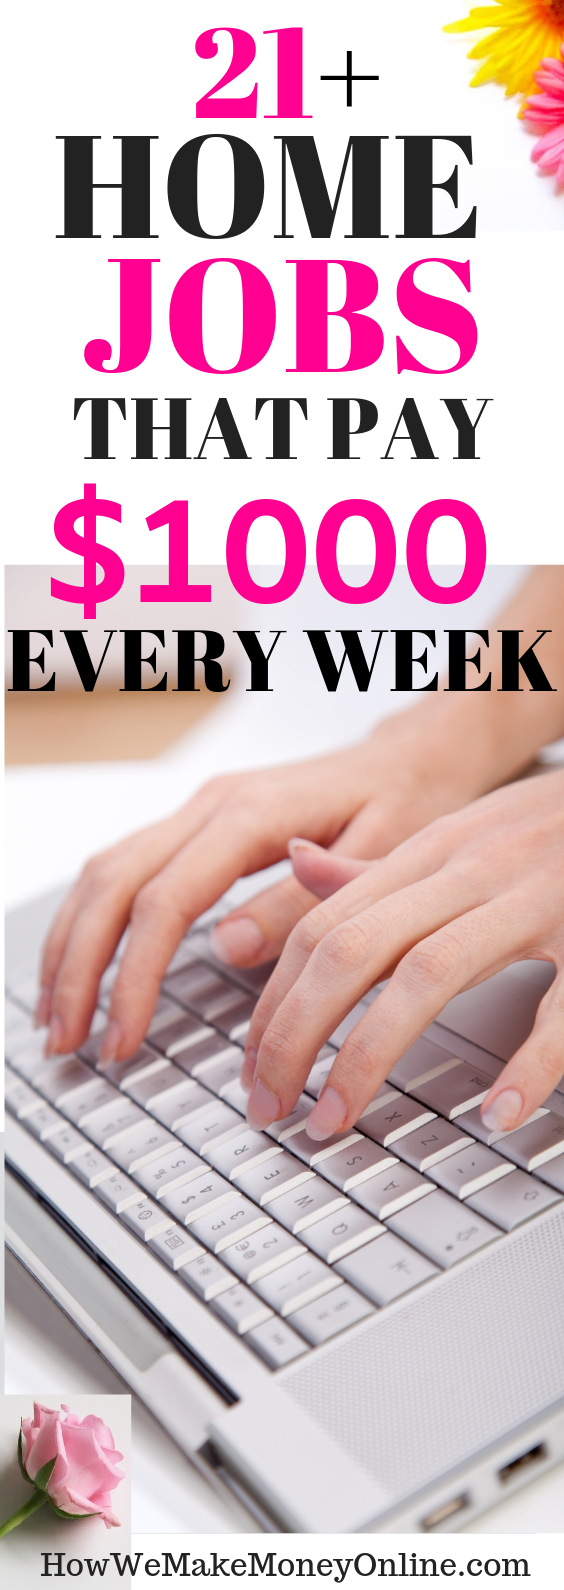 21 Home jobs that pay weekly. Get PAID every week. Looking for the BEST home jobs that pay weekly? In this post, I will SHOW you more than 30 work at home jobs that pay WEEKLY. Most of them are legitimate work from home jobs hiring now. No college degree needed. Also, you can make up to $24/hr or more. Apply for these high-paying work from home jobs and get paid EVERY WEEK. #workfromhome #workfromhomejobs #onlinejobs #momjobs #homejobs #onlinejobsfromhome #remotejobs #telecommute #virtualjobs #makemoney #sidehustles #diy